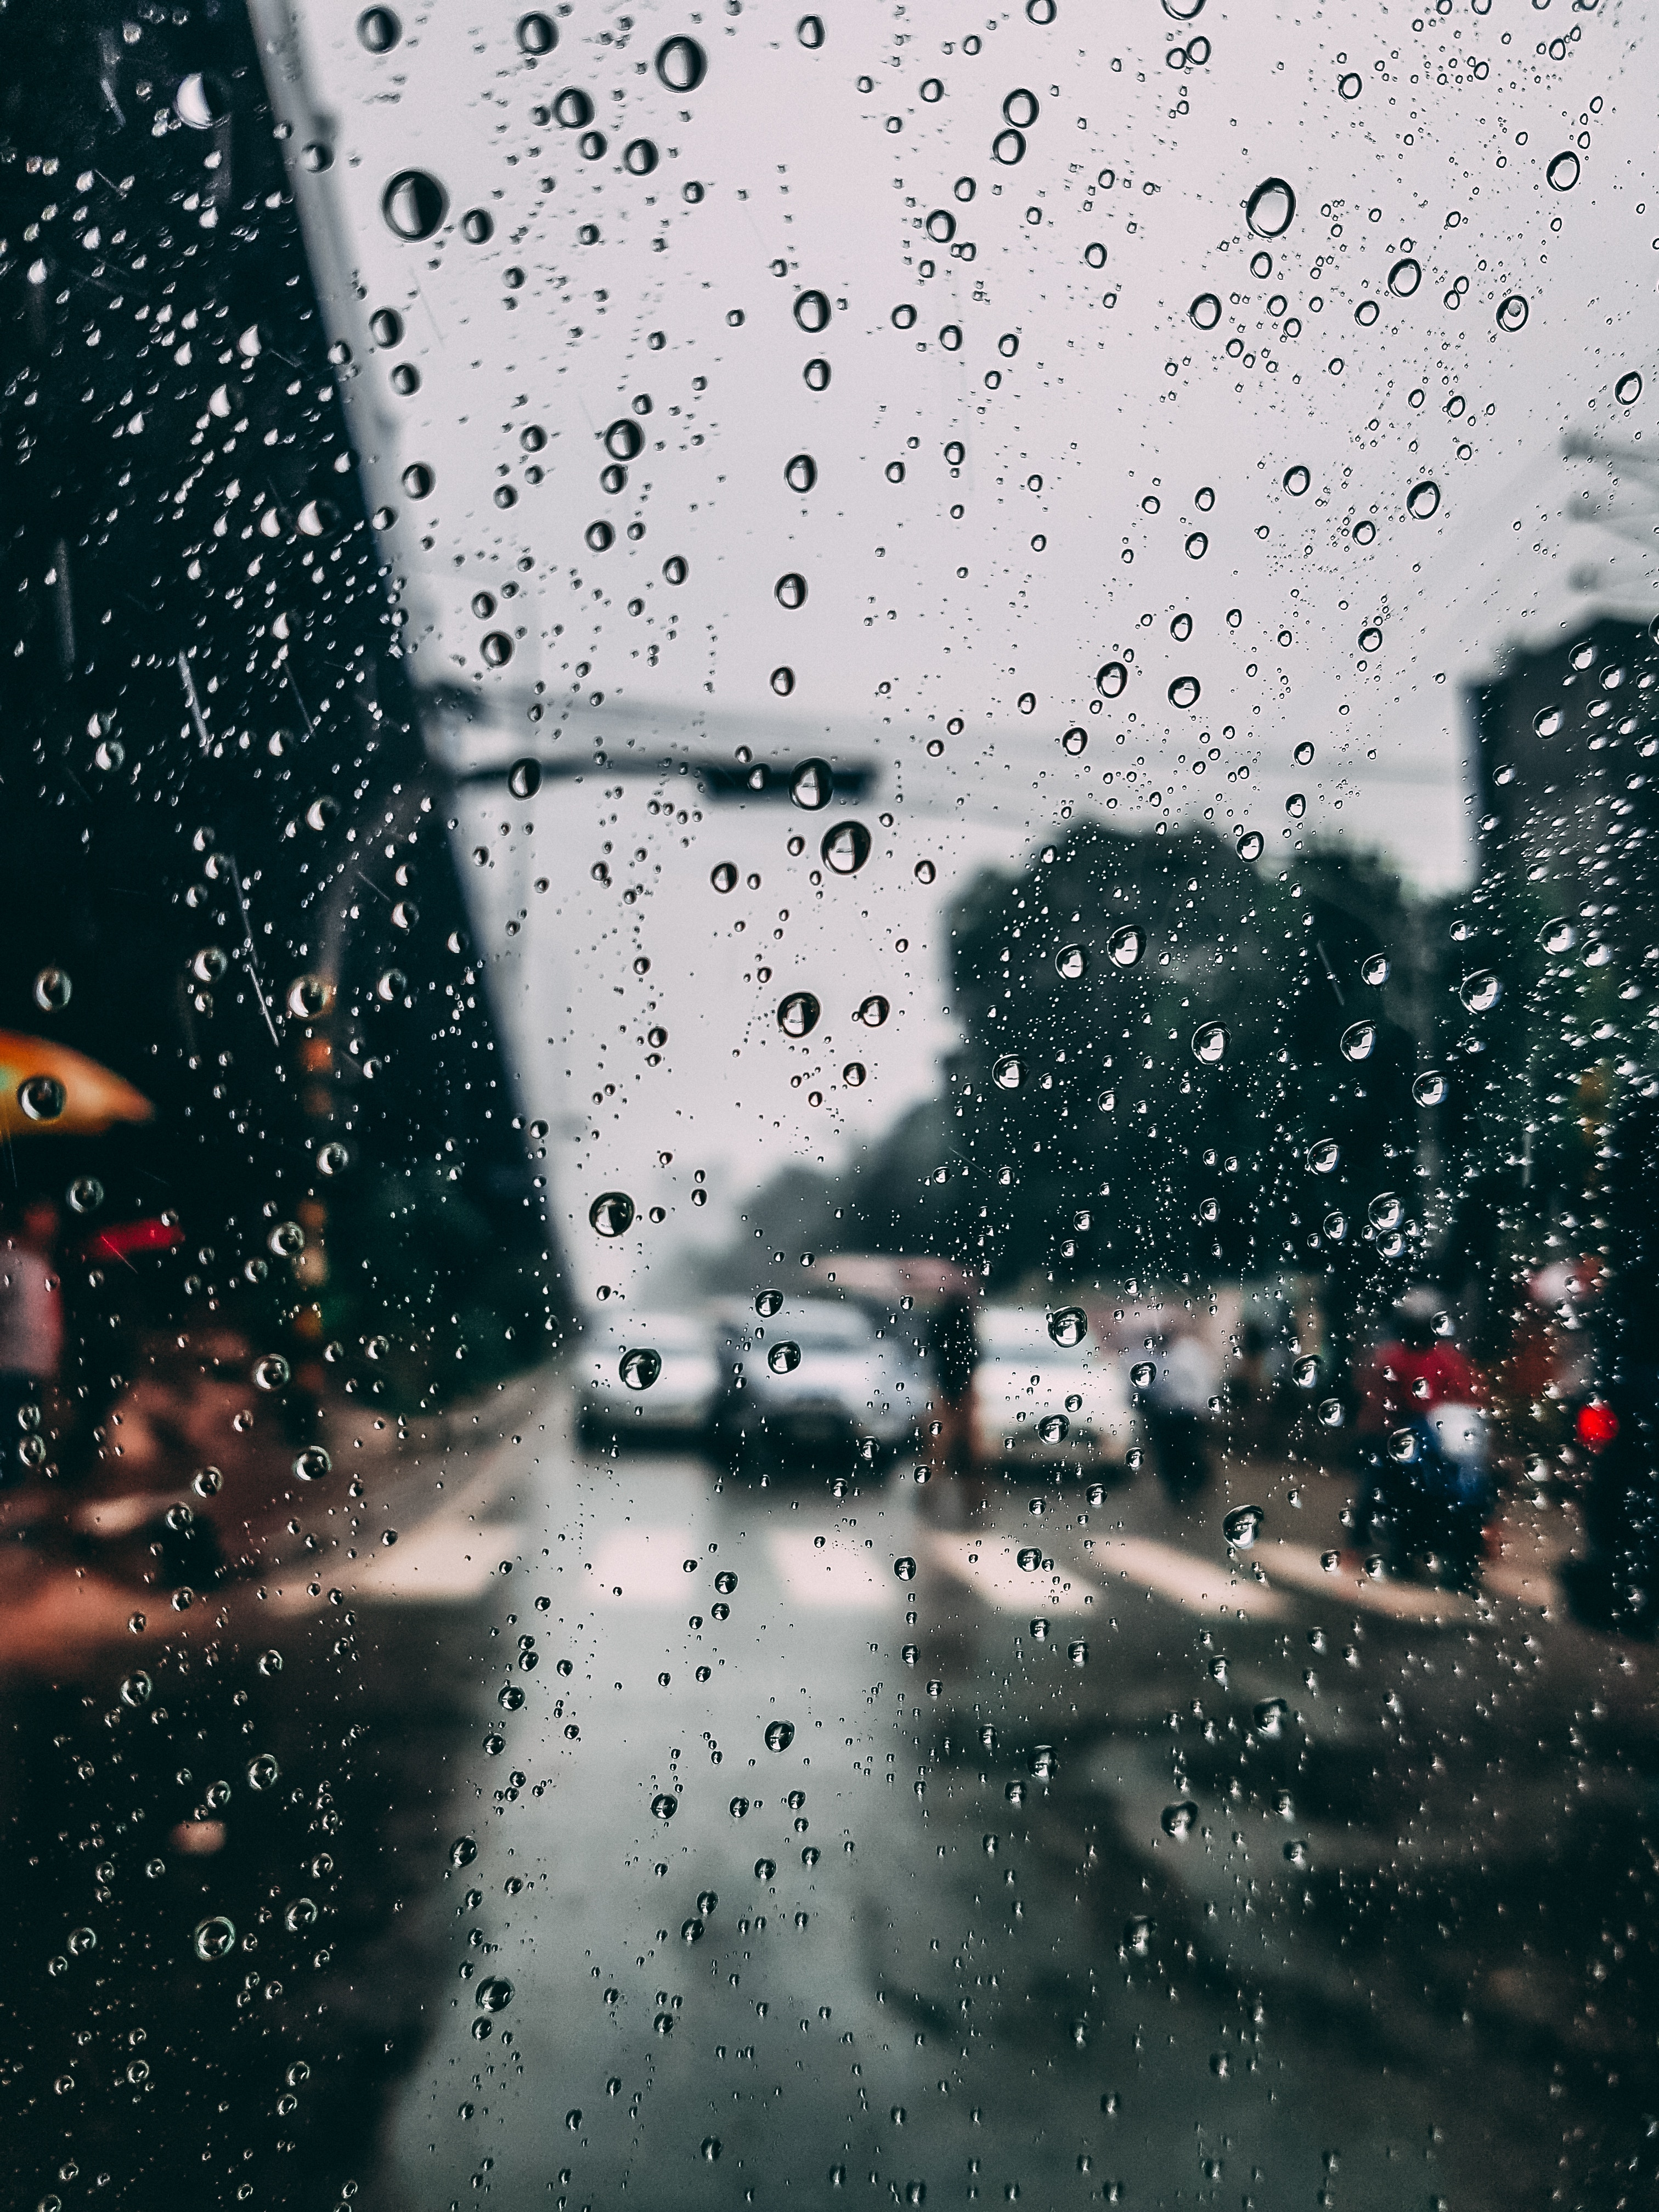 80366 free wallpaper 1080x2400 for phone, download images Rain, Drops, City, Macro, Blur, Smooth, Moisture, Glass 1080x2400 for mobile